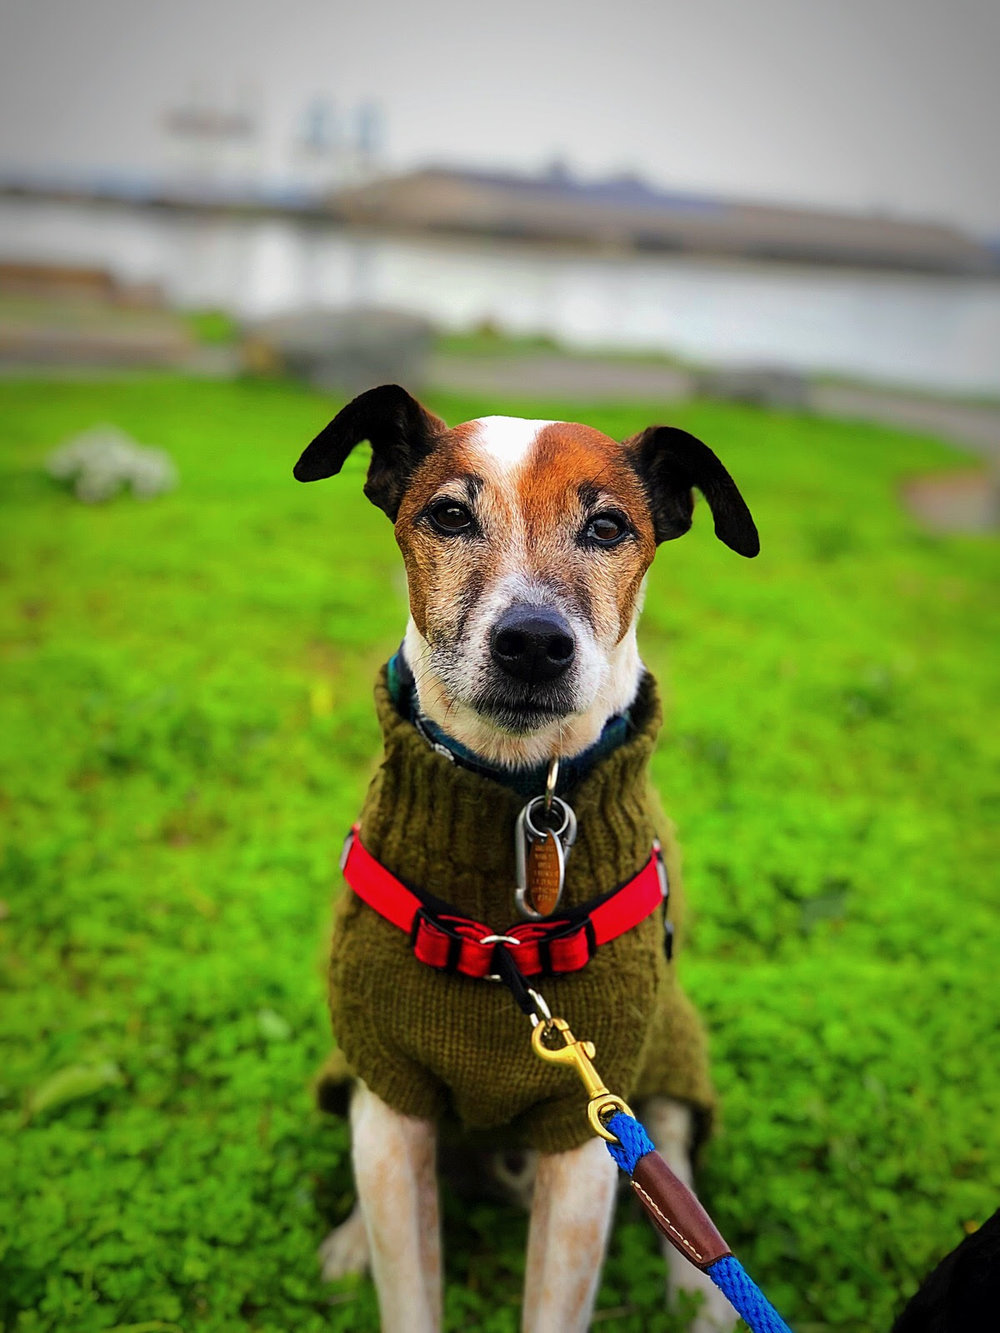 ED - BREED: Rat Terrier / Jack Russell Terrier | RESCUEDAGE: 10 yearsLOVES: screaming, earthworms, sweatersHATES: eye contact with other dogs, cats